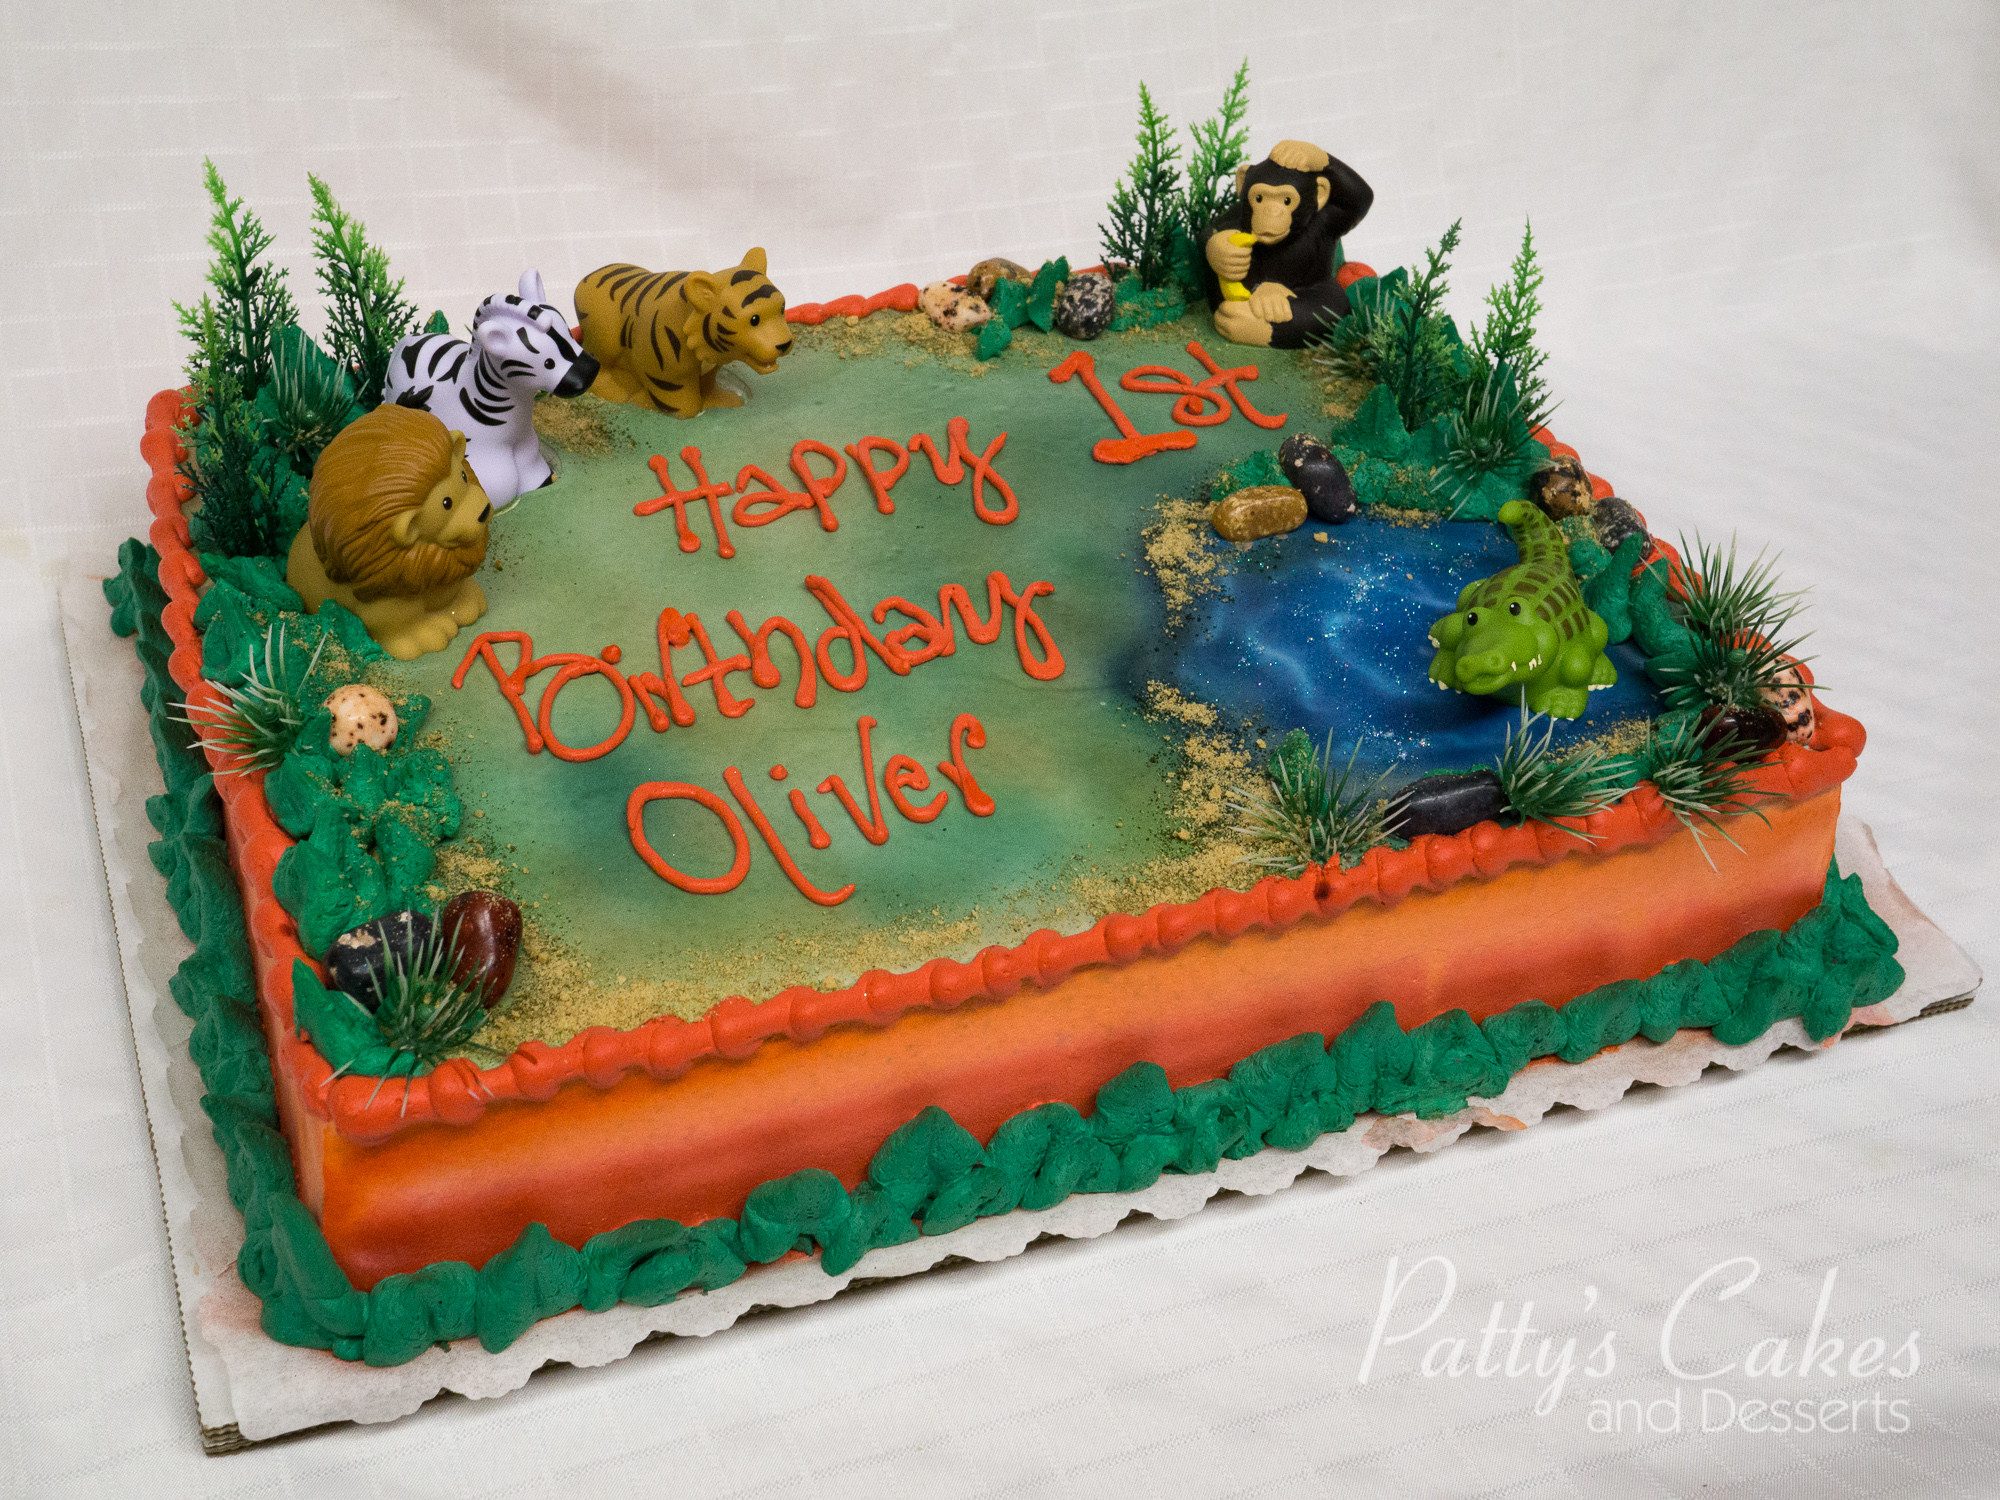 Best ideas about Birthday Cake Photo . Save or Pin of a zoo themed birthday cake Patty s Cakes and Now.